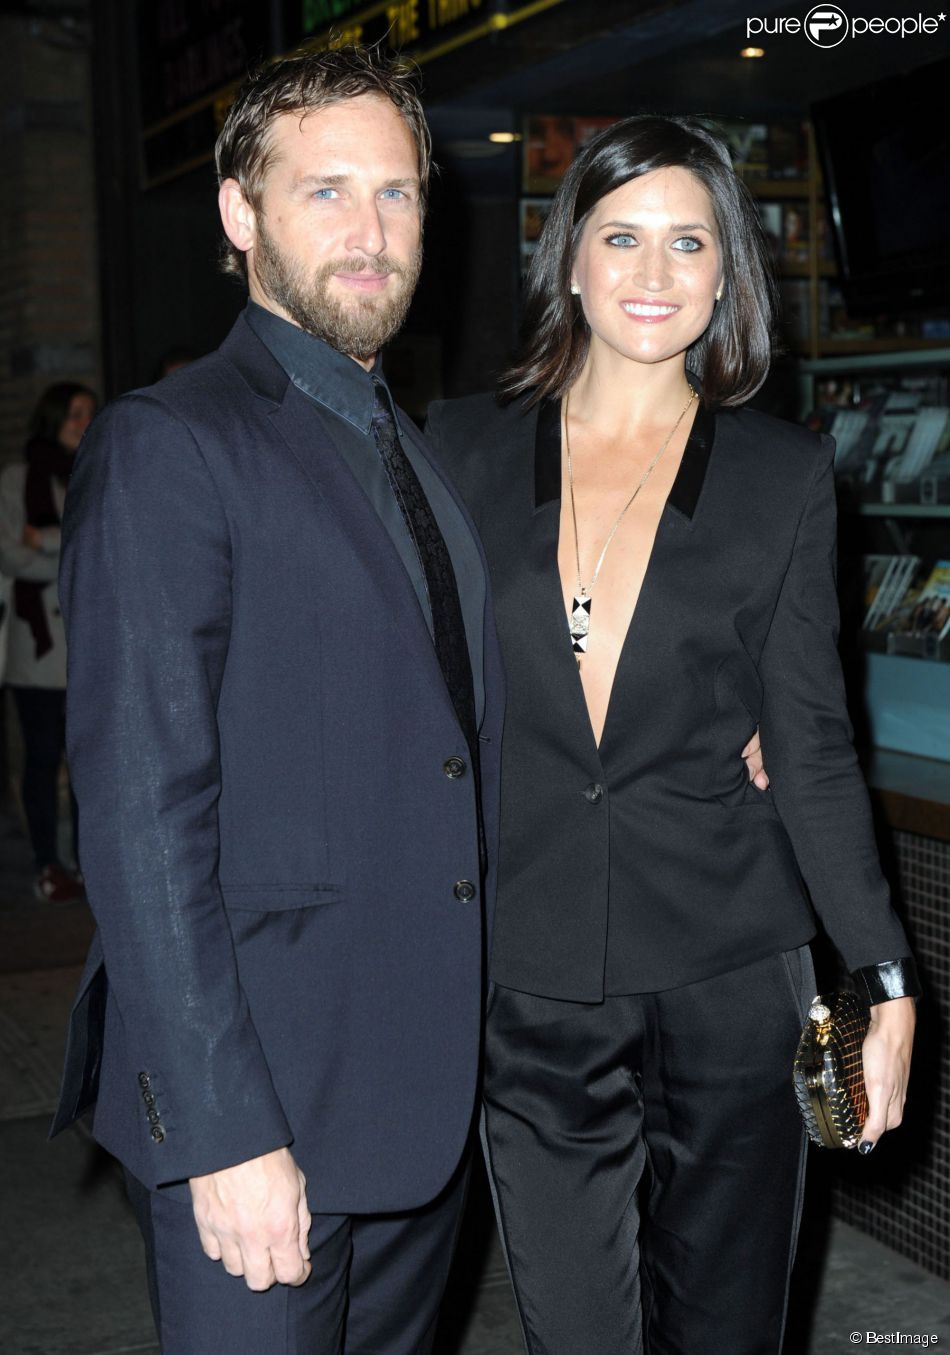 josh lucas wife purchase brownstone together